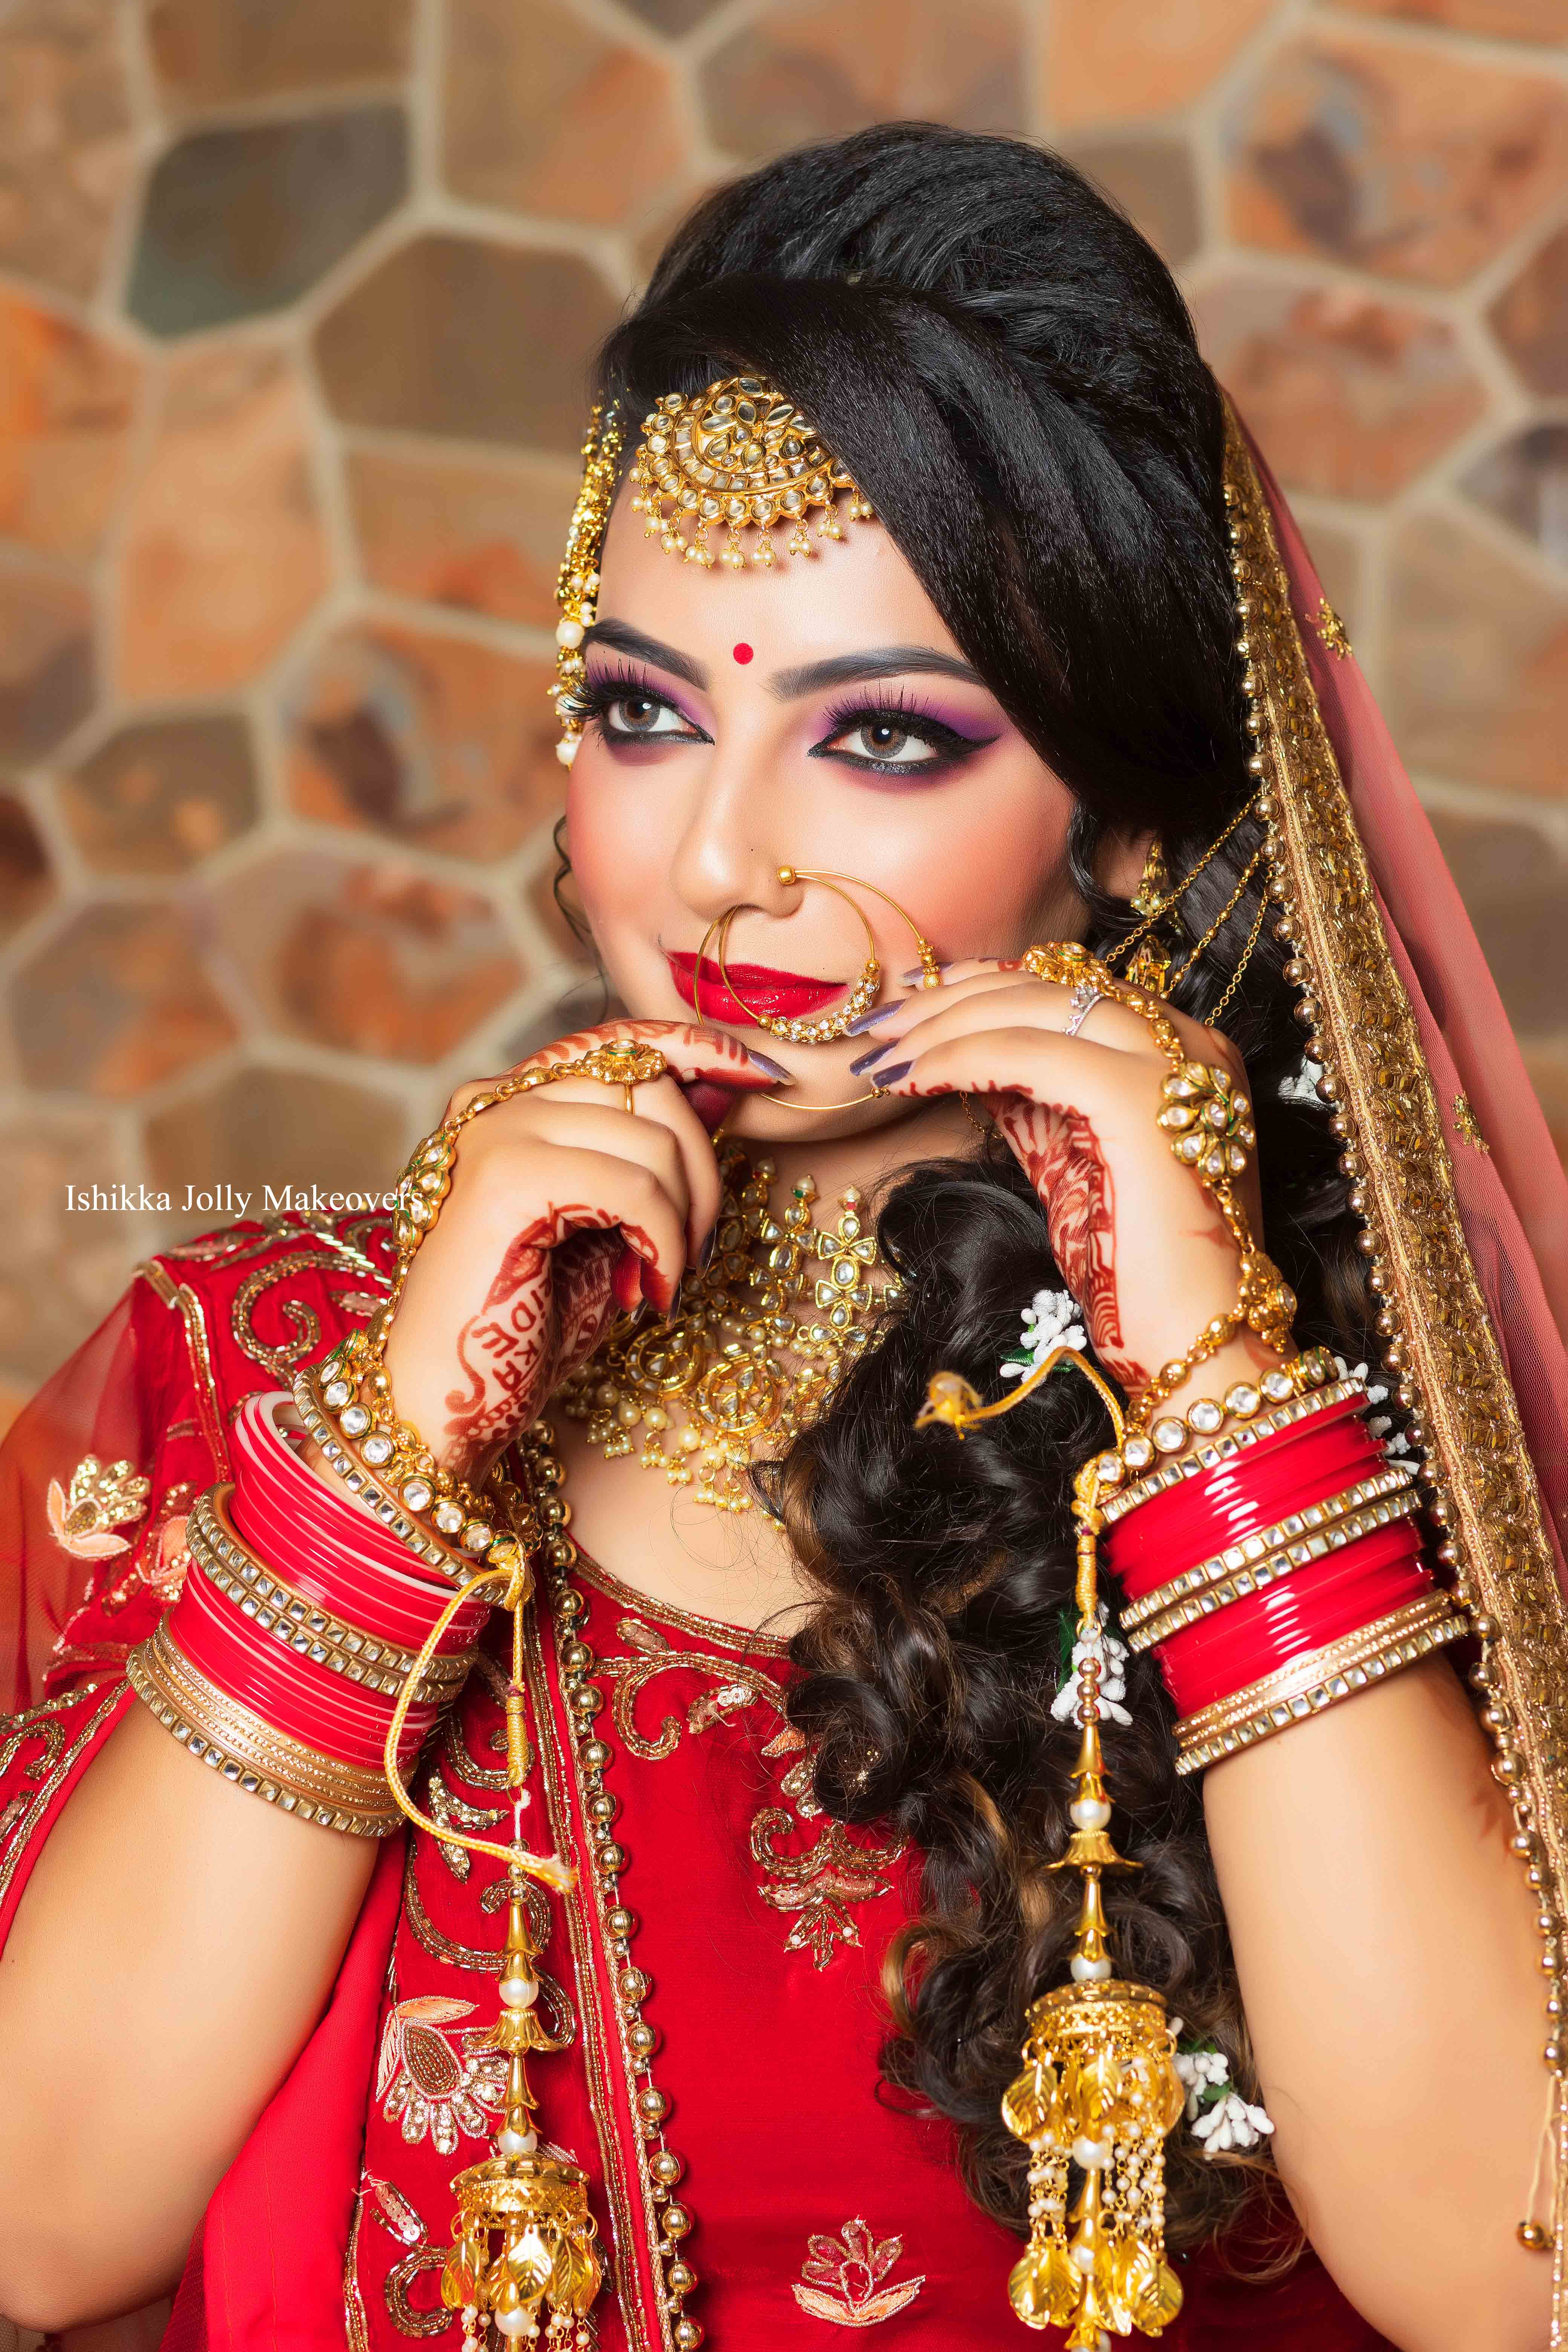 Tips to finding the right bridal makeup artist in delhi for your wedding